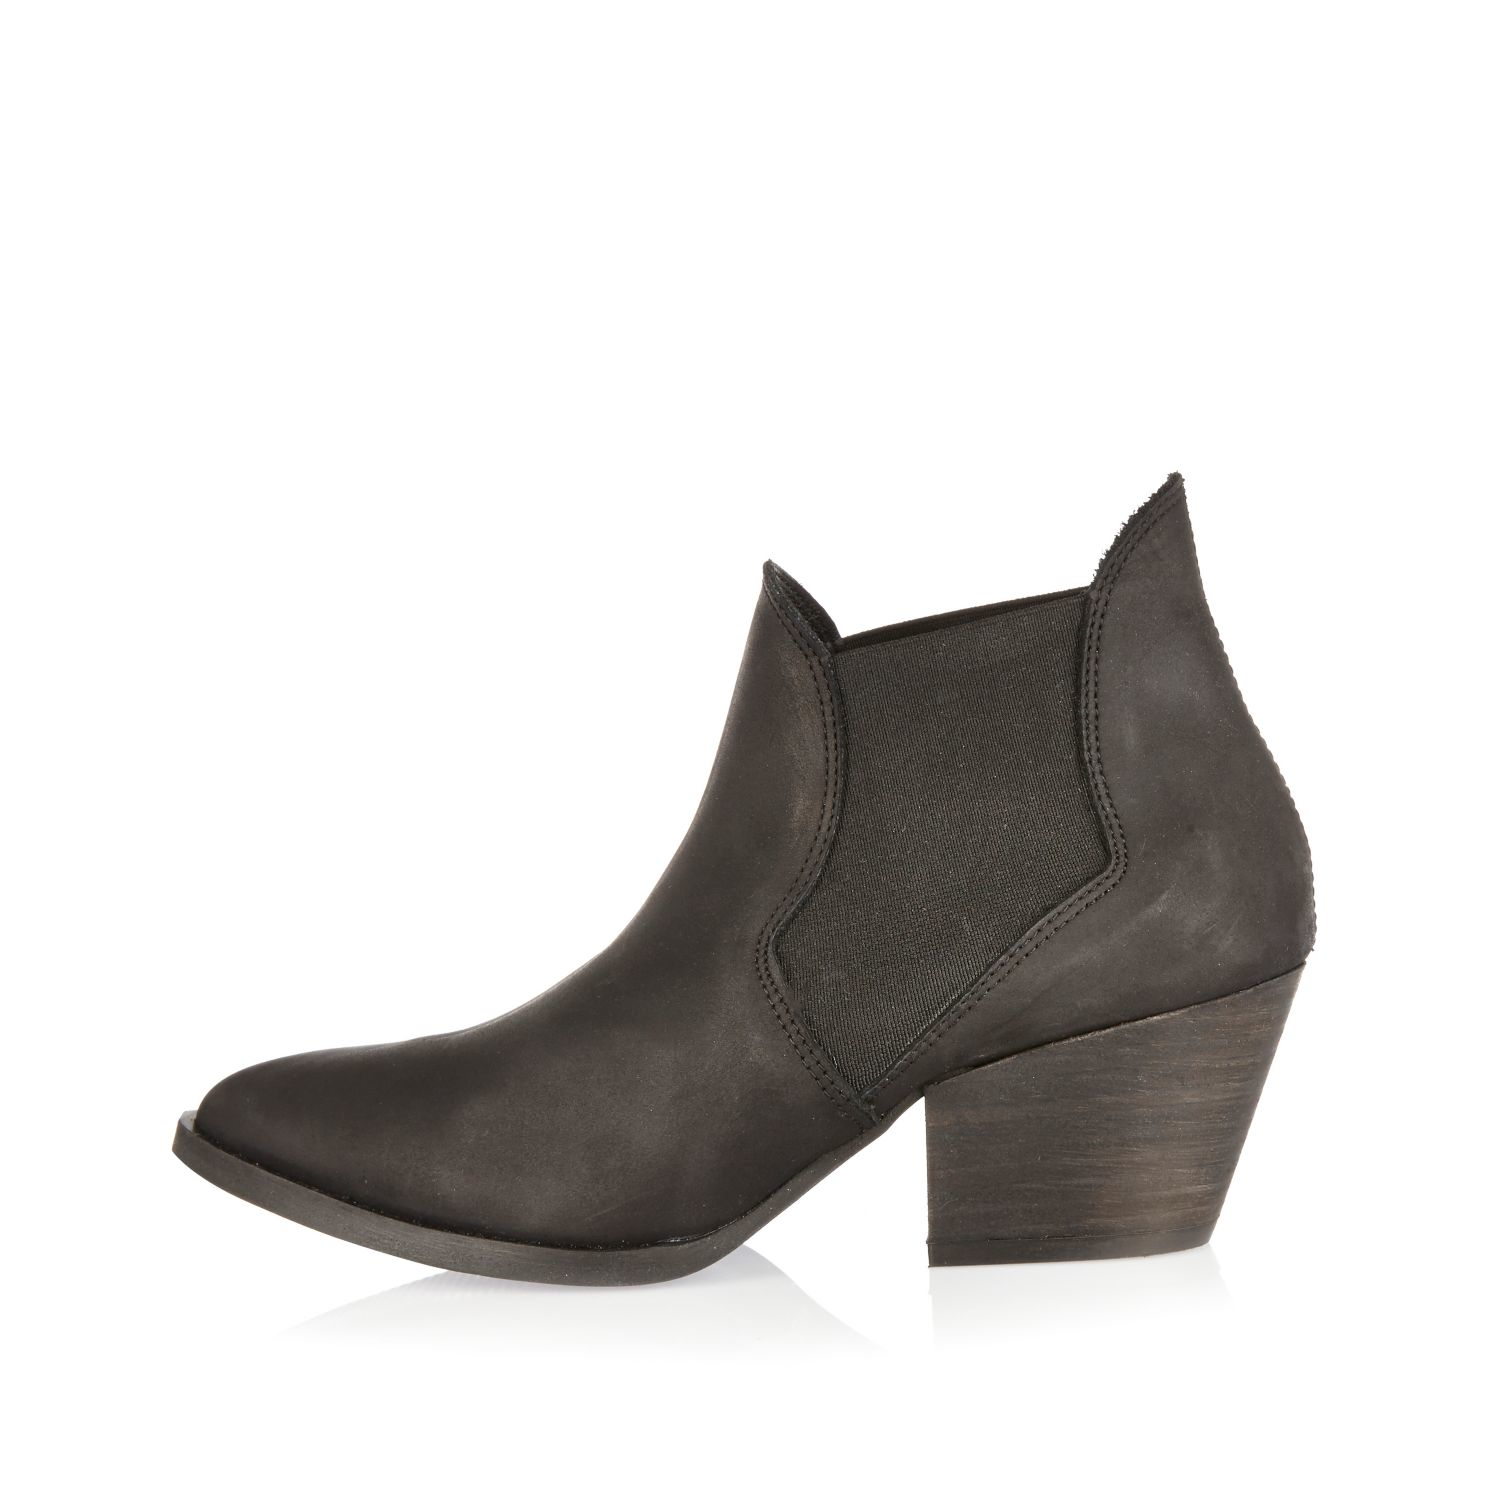 River island Black Western Ankle Boots in Black | Lyst